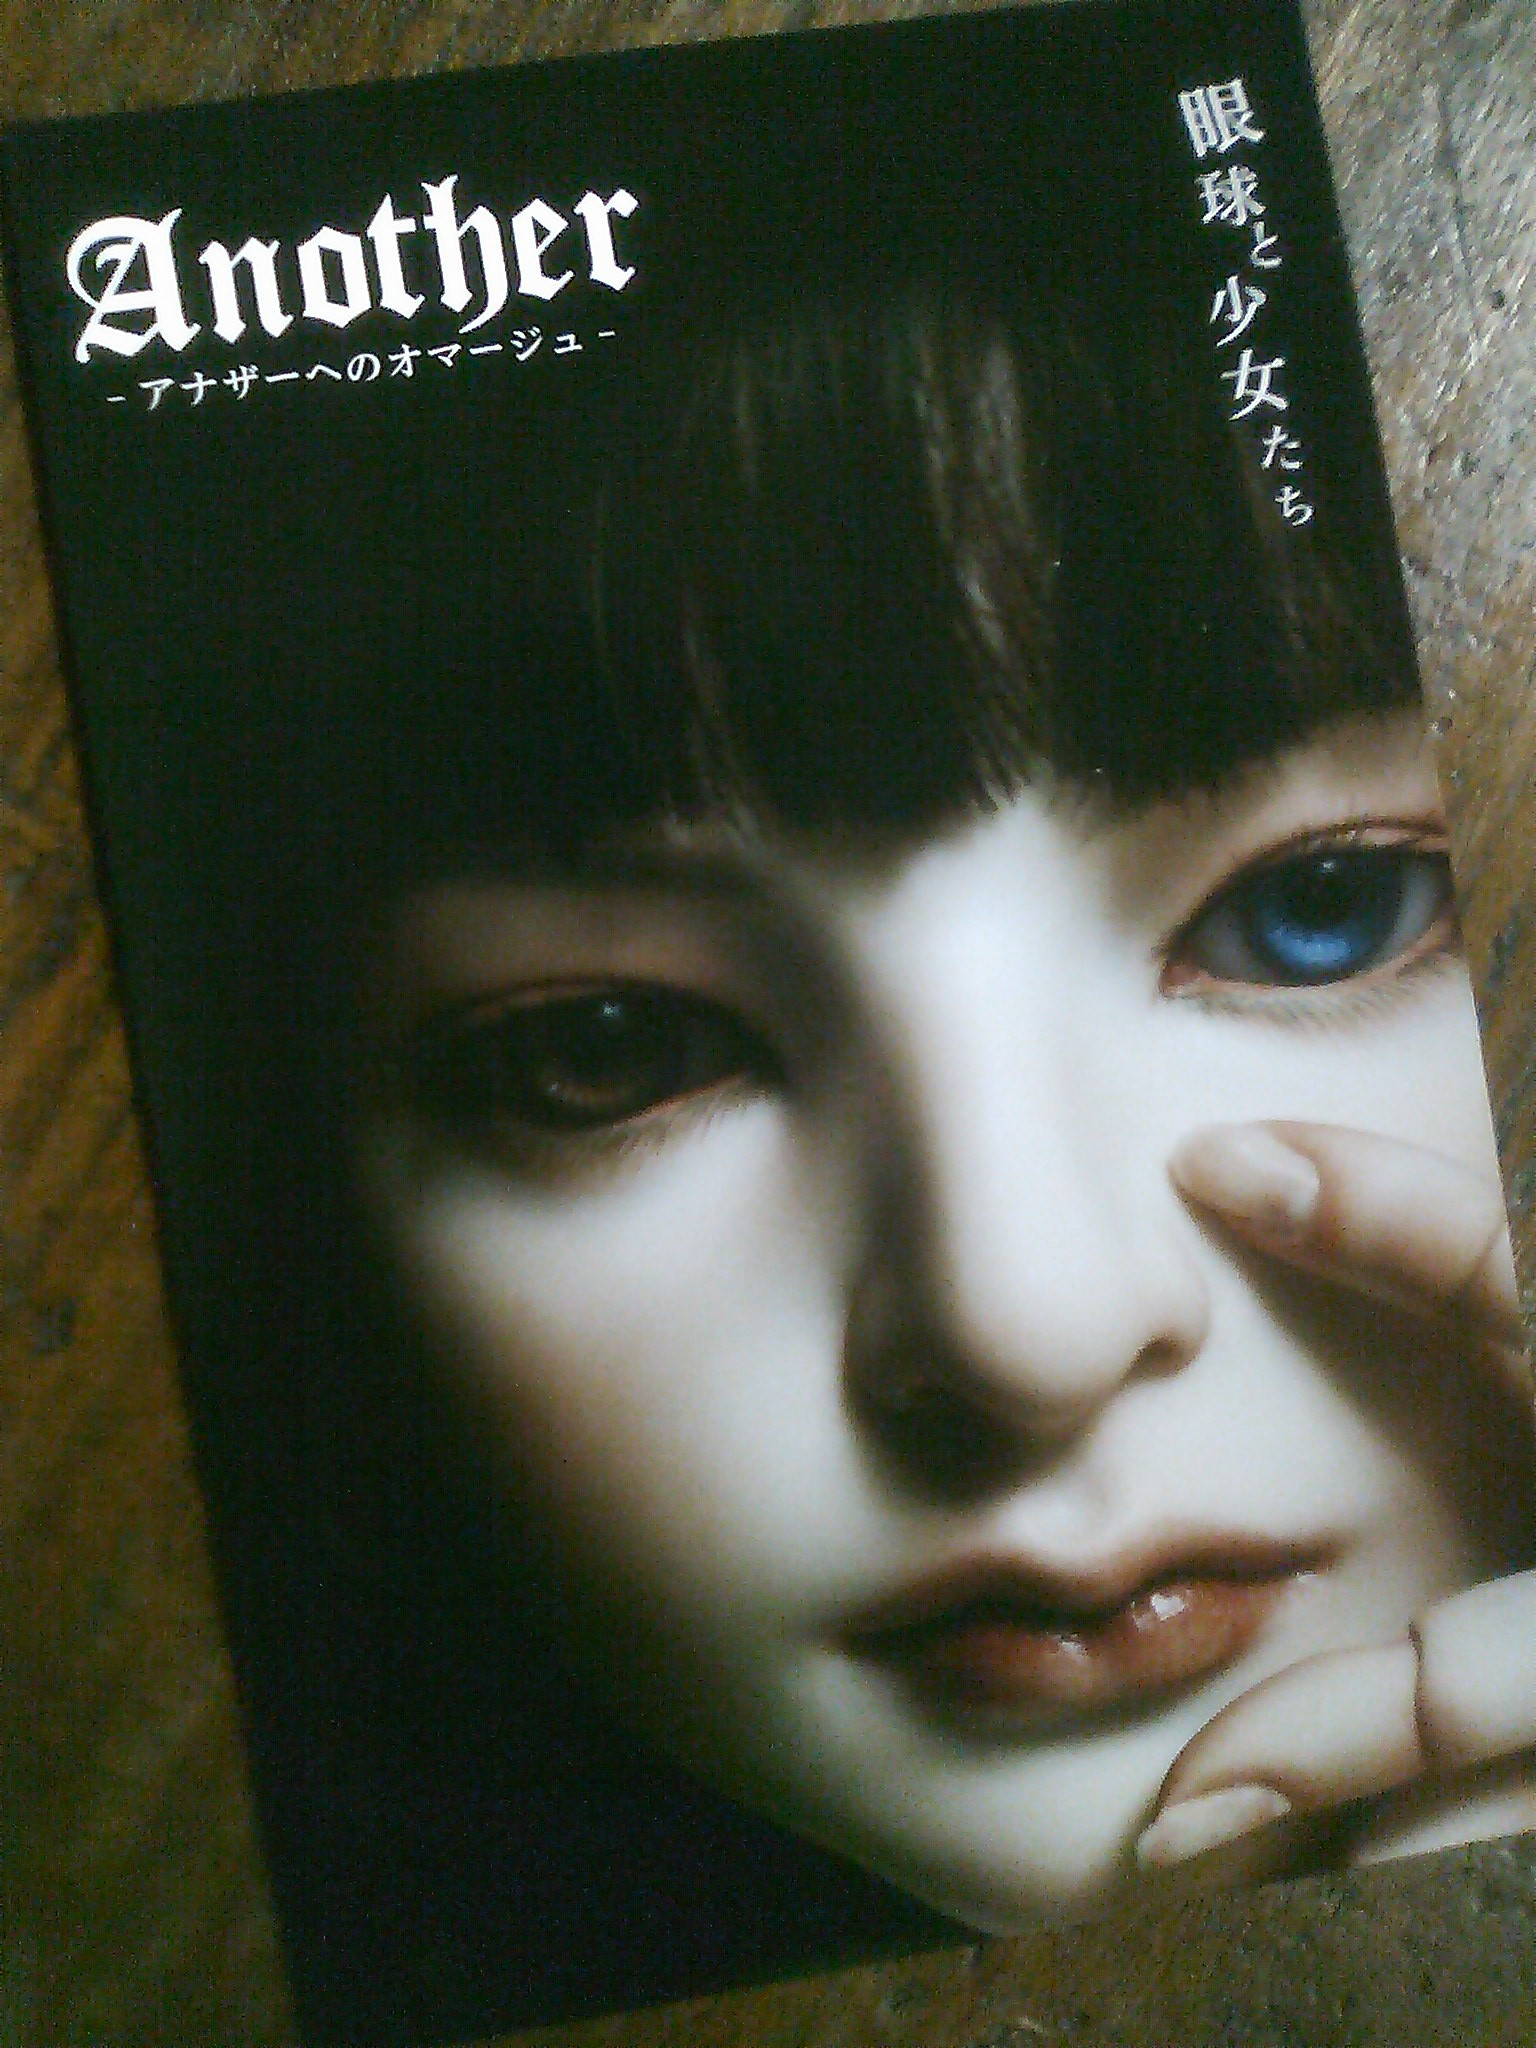 """Art exhibition paying homage to """"Another"""", horror mystery story written by Yukito Ayatsuji"""